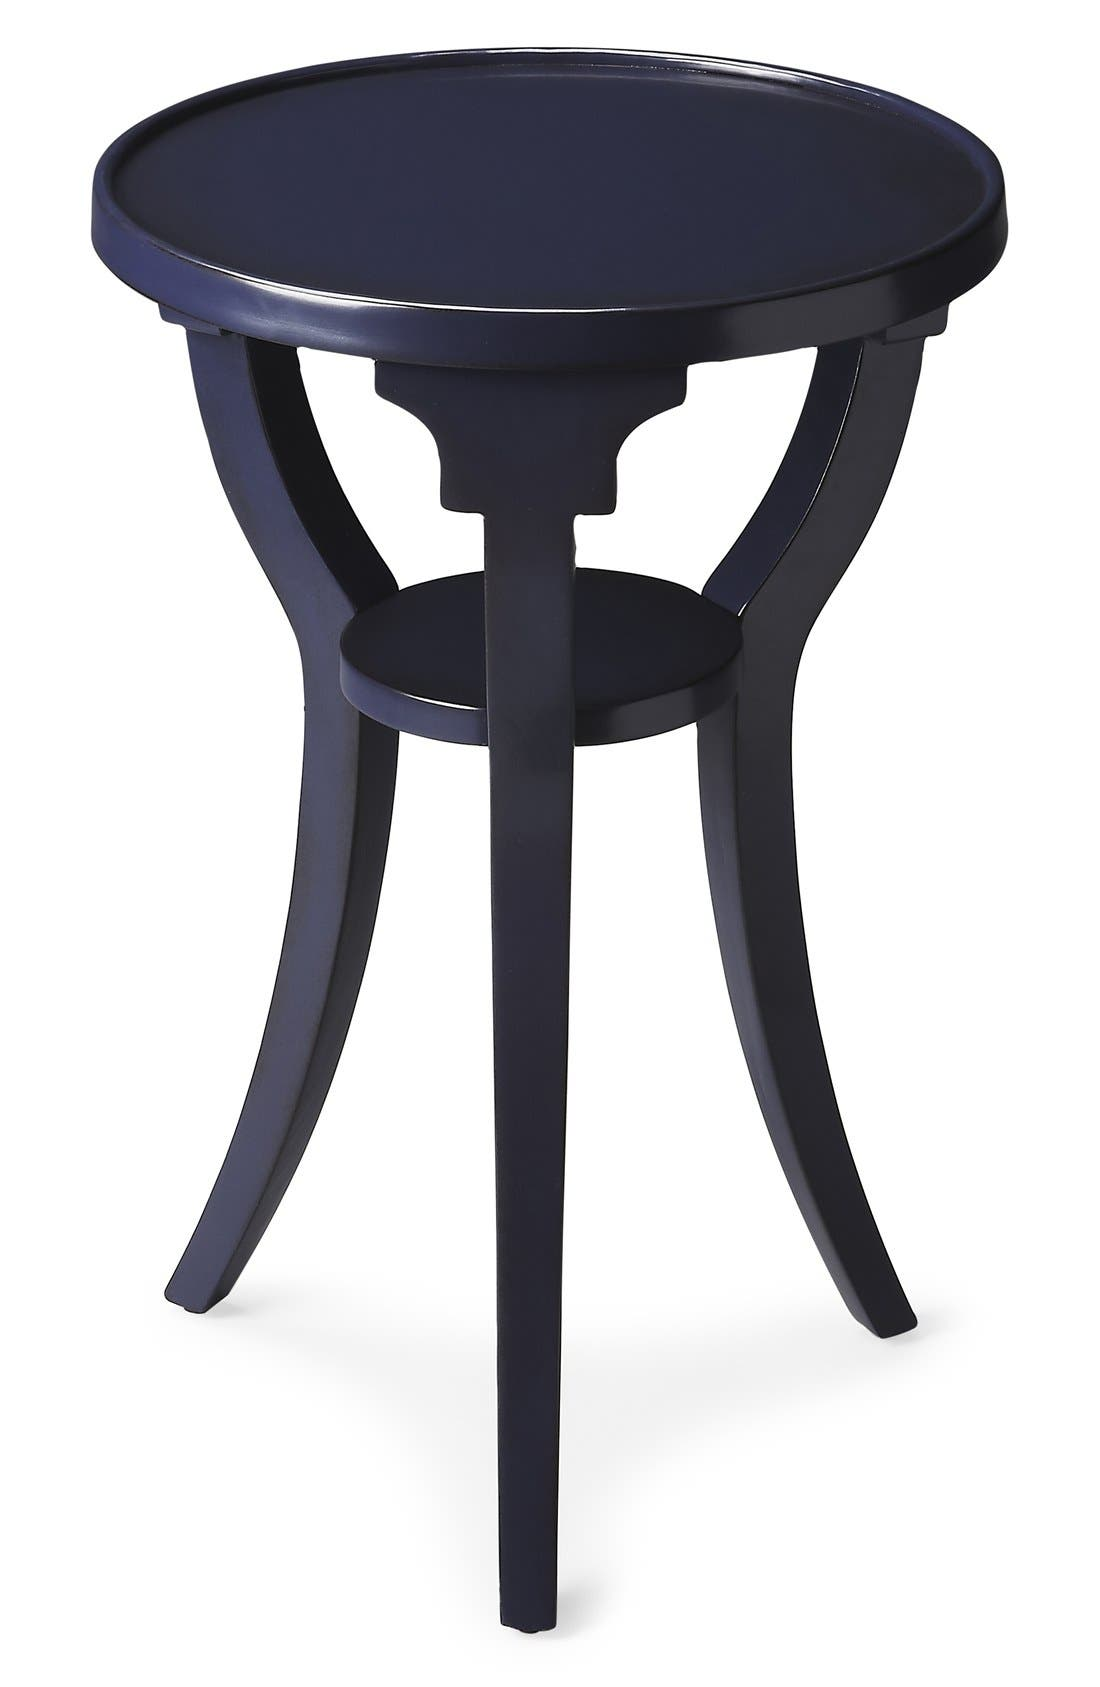 Alternate Image 1 Selected - Butler Round Wood Accent Table